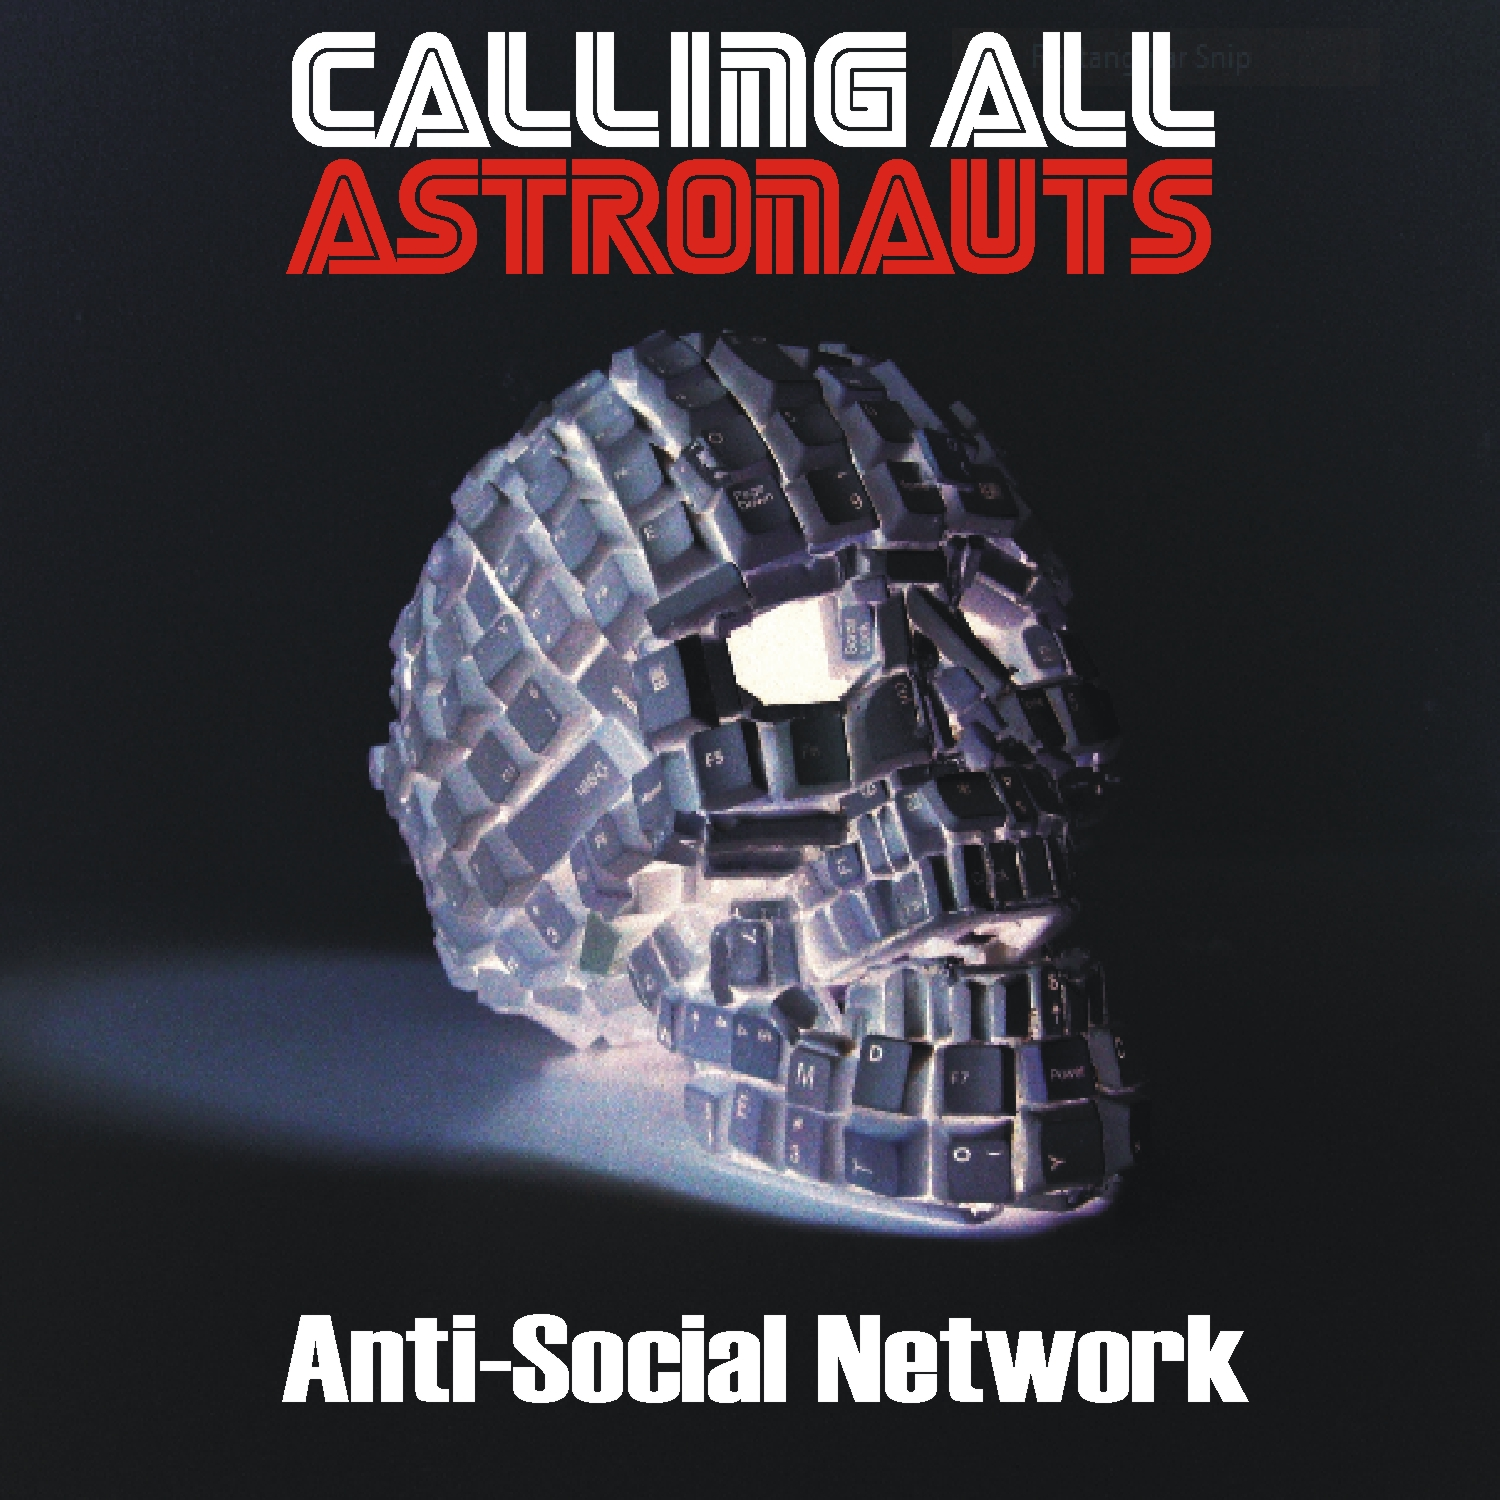 Calling All Astronauts - Anti-Social Network